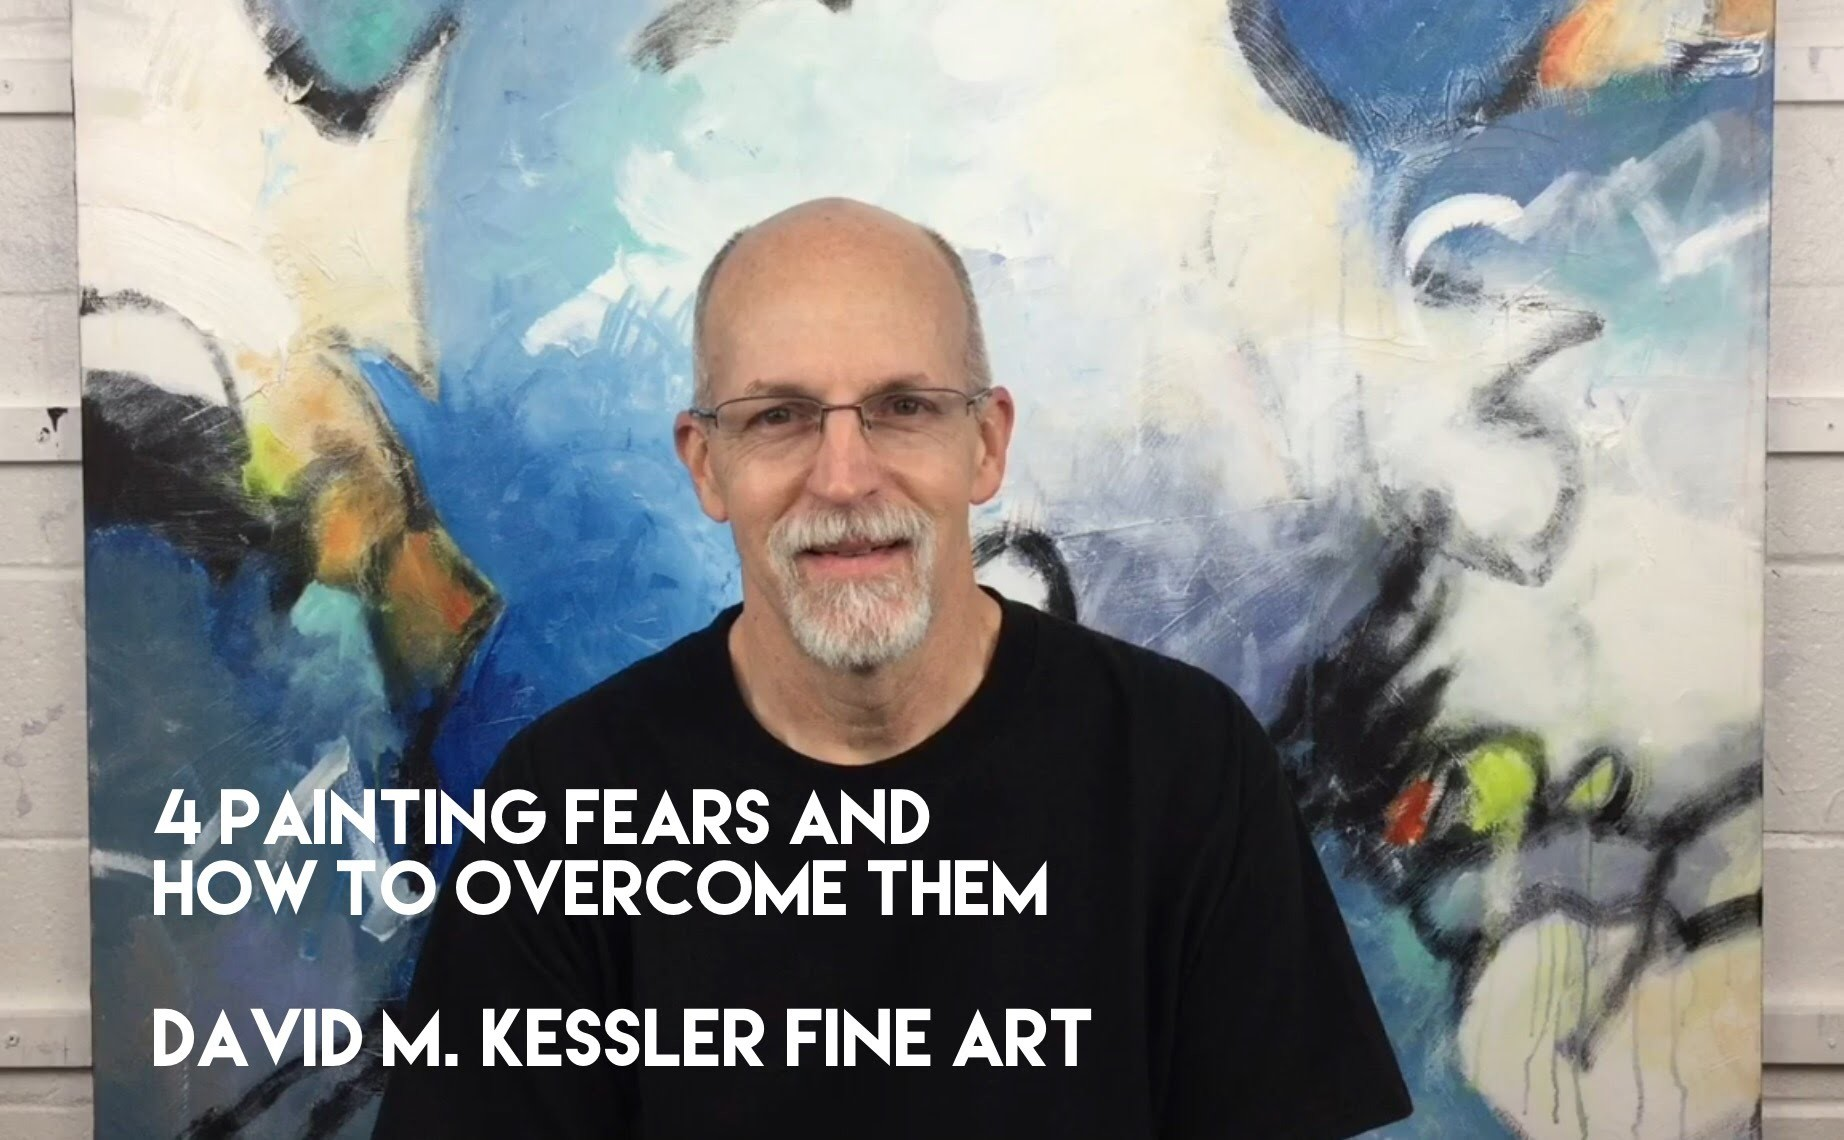 4 Painting Fears and How to Overcome Them